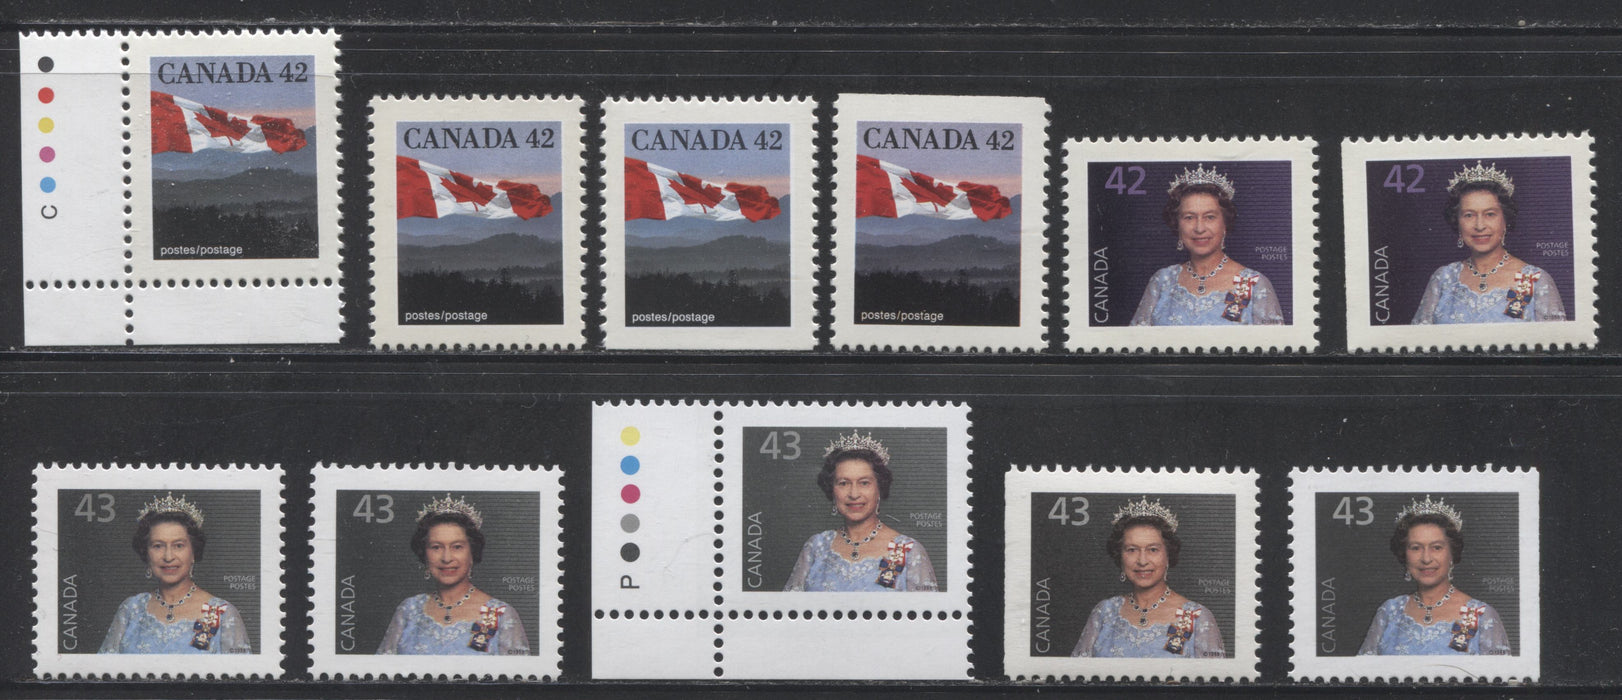 Canada #1356/1358avs 42c-43c Canadian Flag & Queen Elizabeth II, 1991-1998 Fruit and Flag Issue, VFNH Examples of Most Listed Sheet and Booklet Stamps